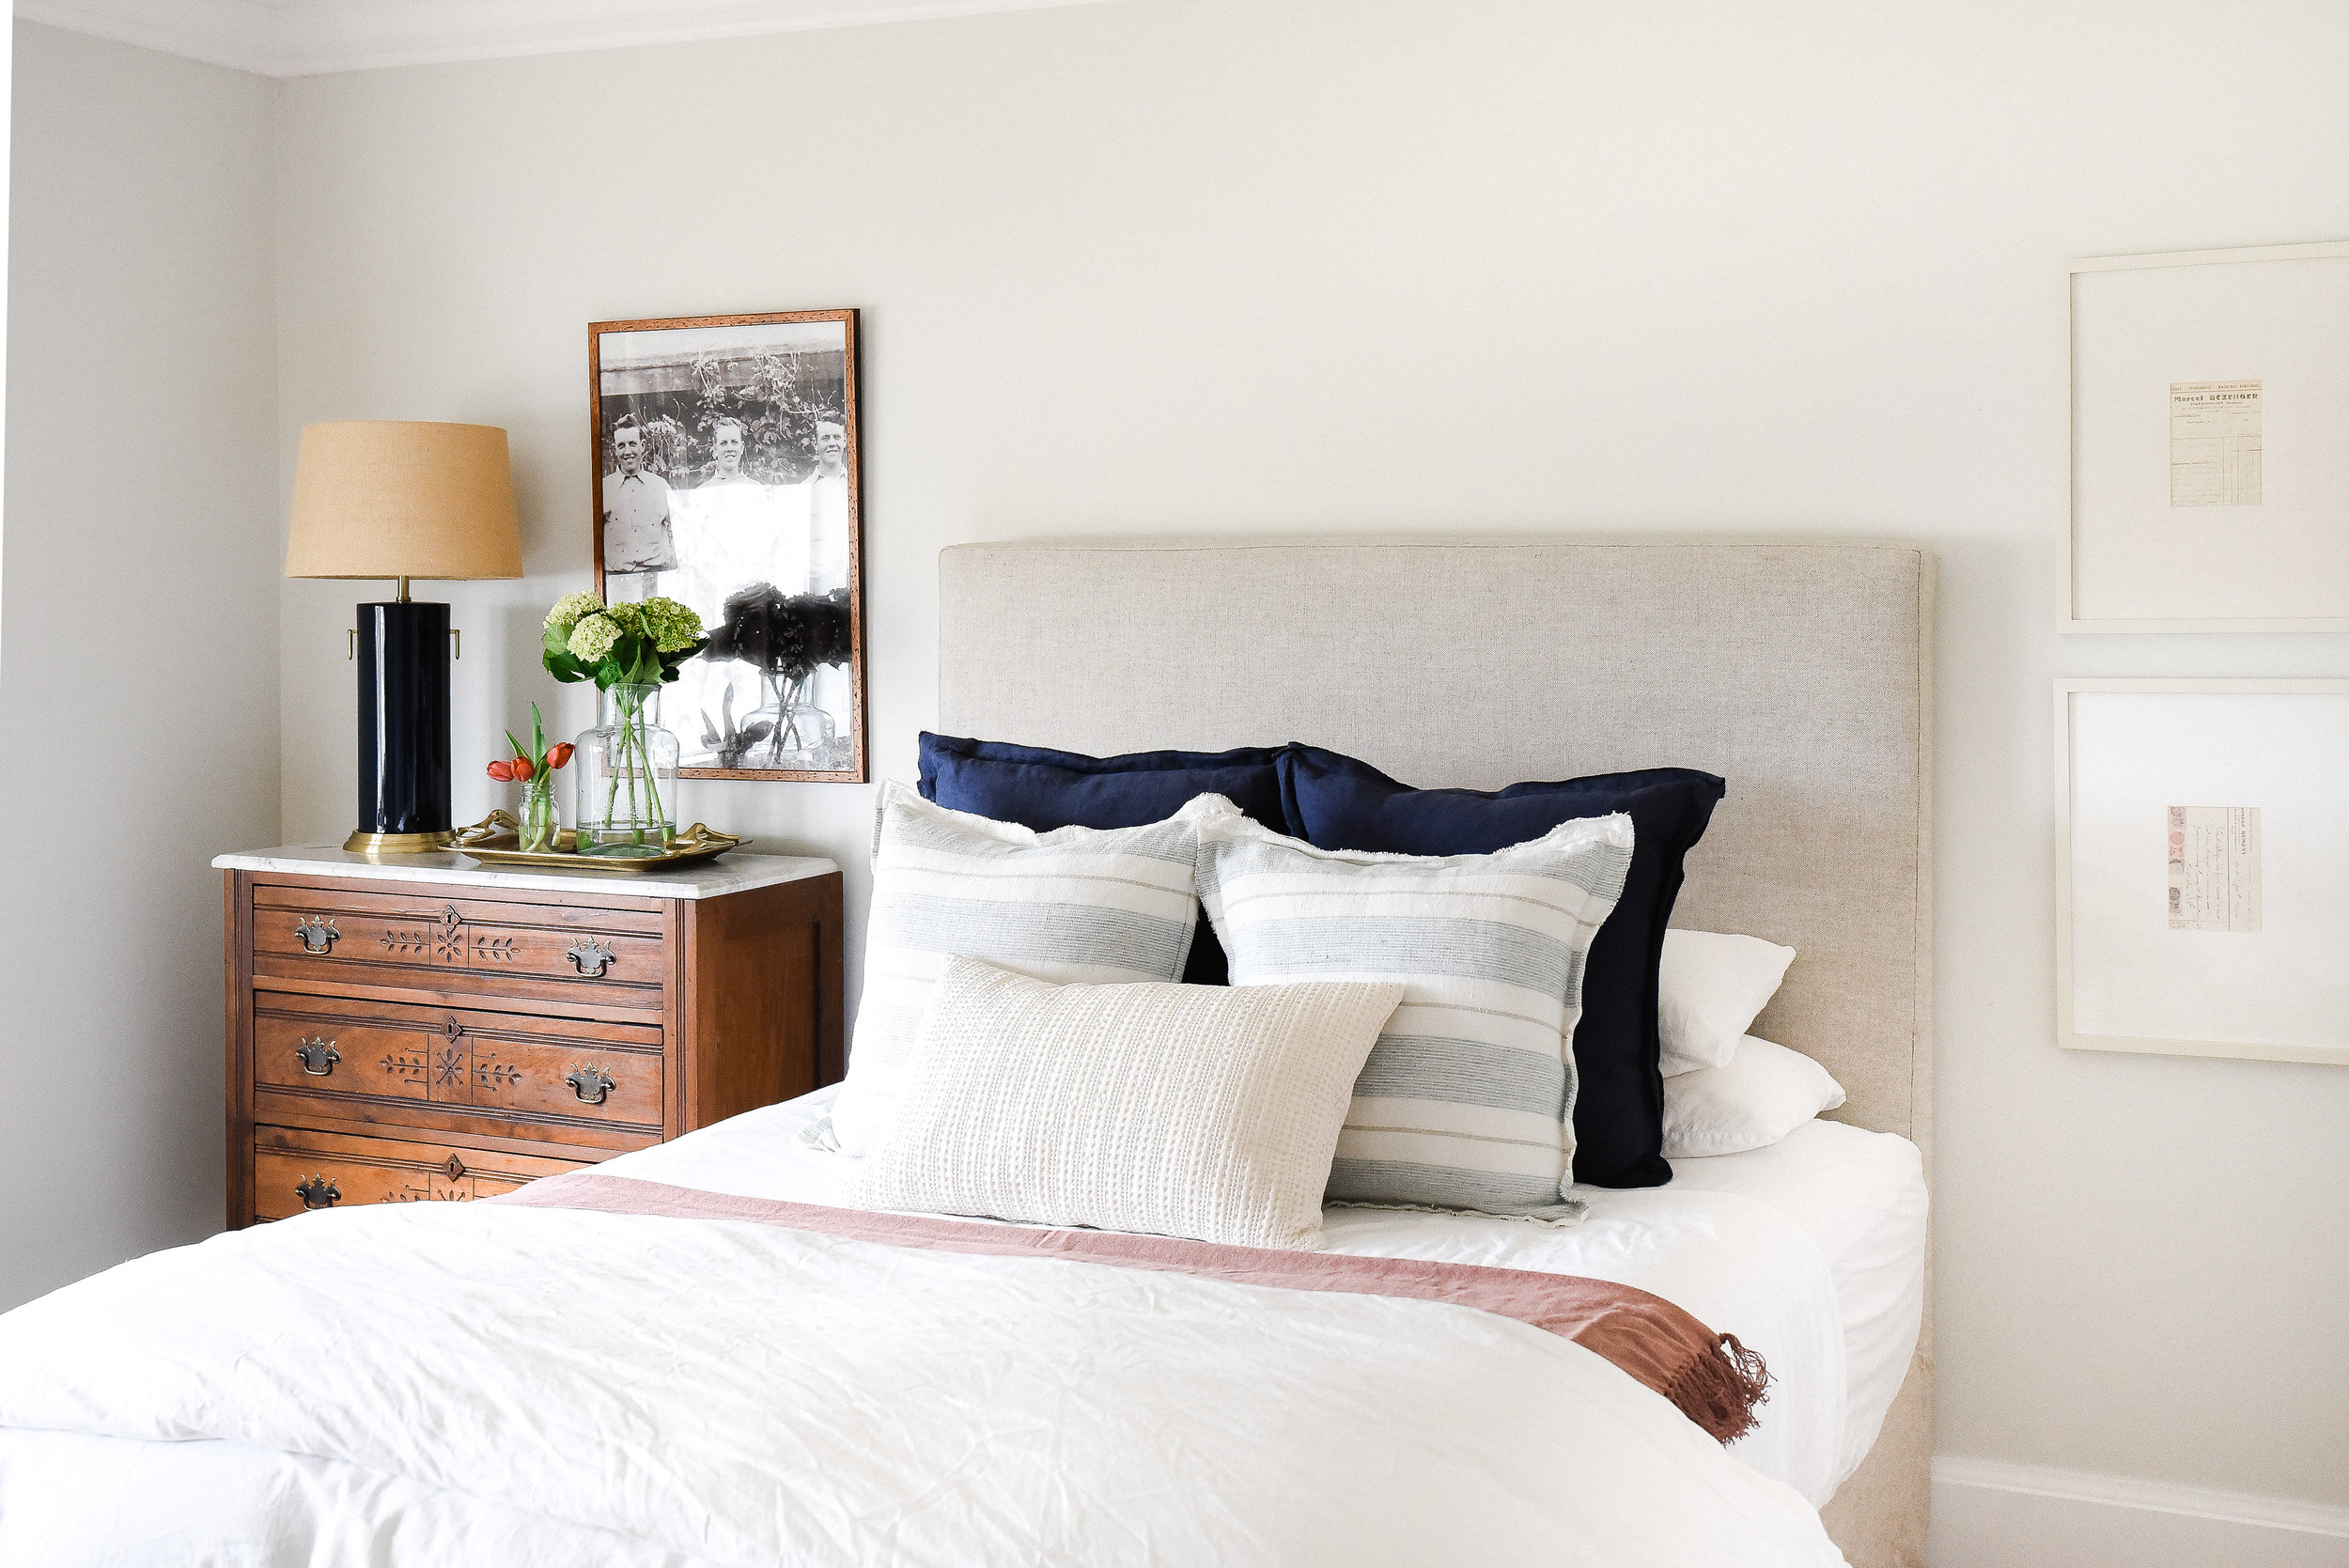 Guest Bedroom ideas - great ways to make overnight guests feel welcome! This beautiful farmhouse bedroom is perfect for guests! boxwoodavenue.com #farmhousebedroom #guestbedroomideas